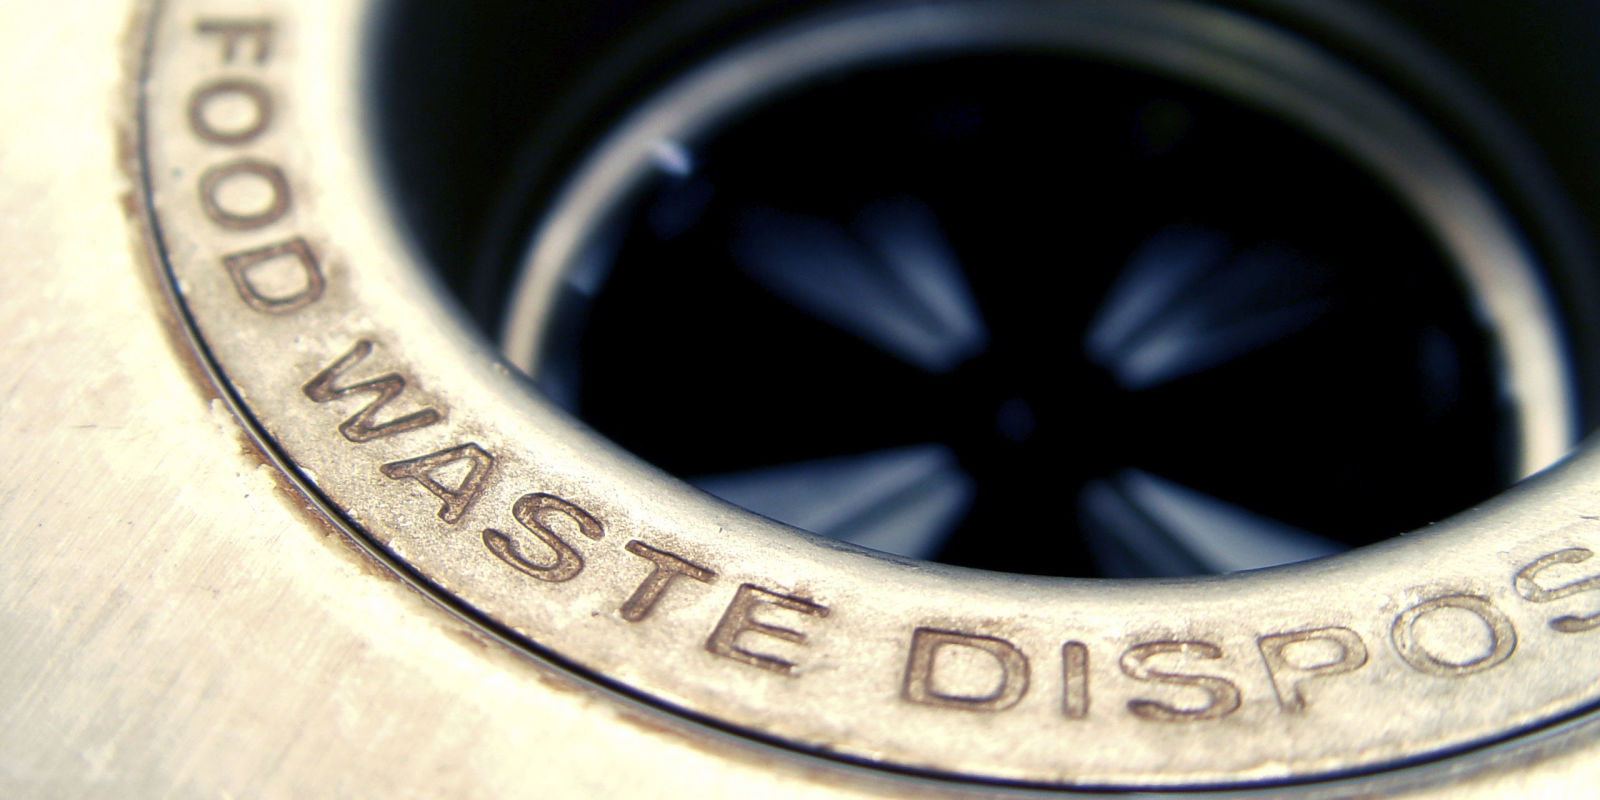 Things That You Should Never Put In The Garbage Disposal